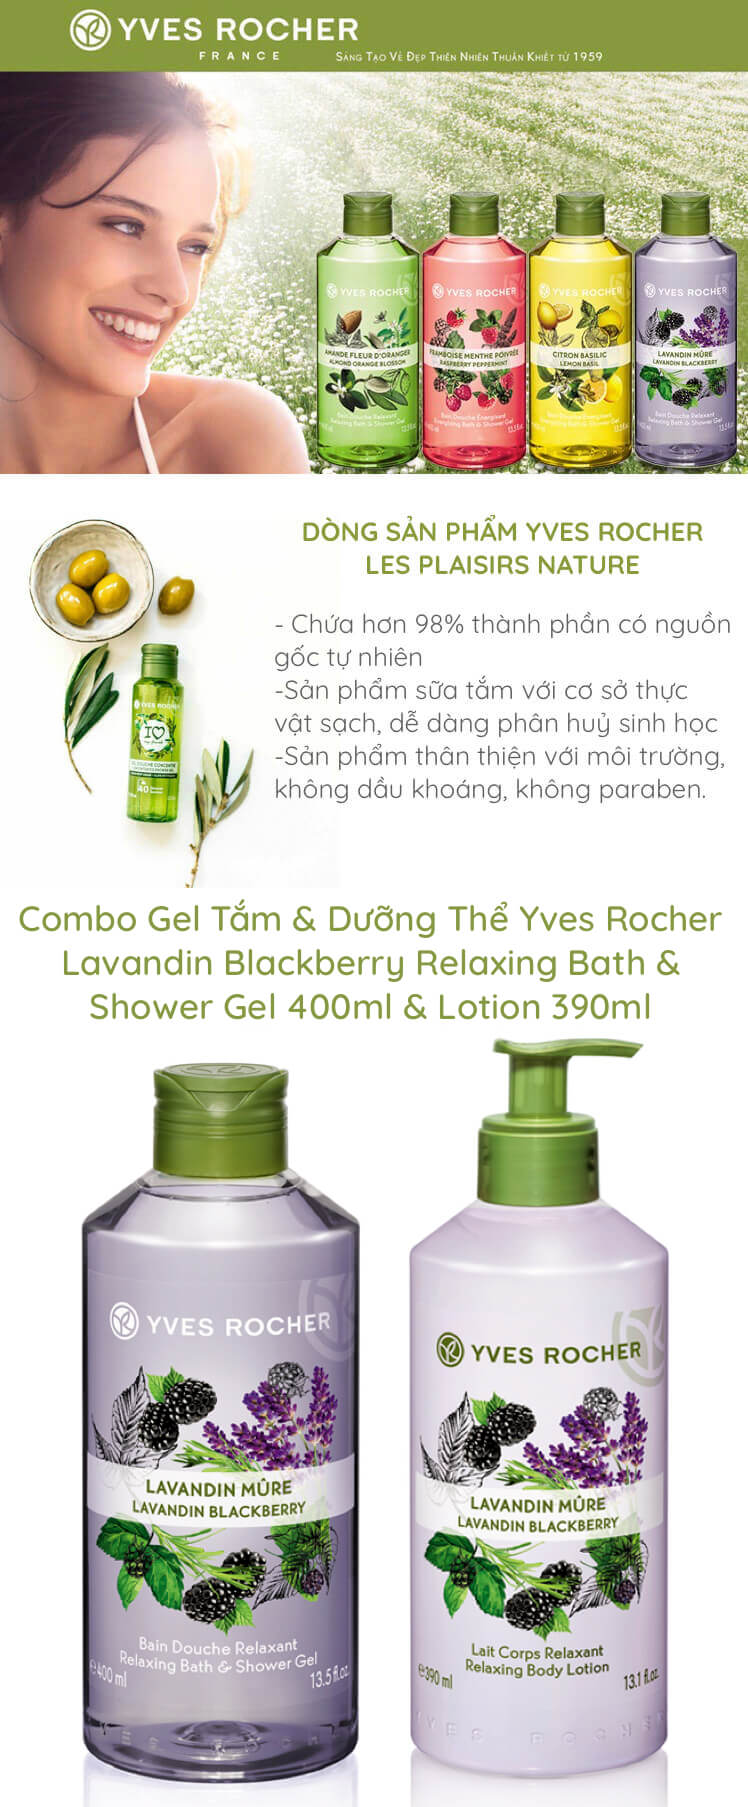 Combo Gel Tắm & Dưỡng Thể Yves Rocher Lavandin Blackberry Relaxing Bath & Shower Gel 400ml & Lotion 390ml